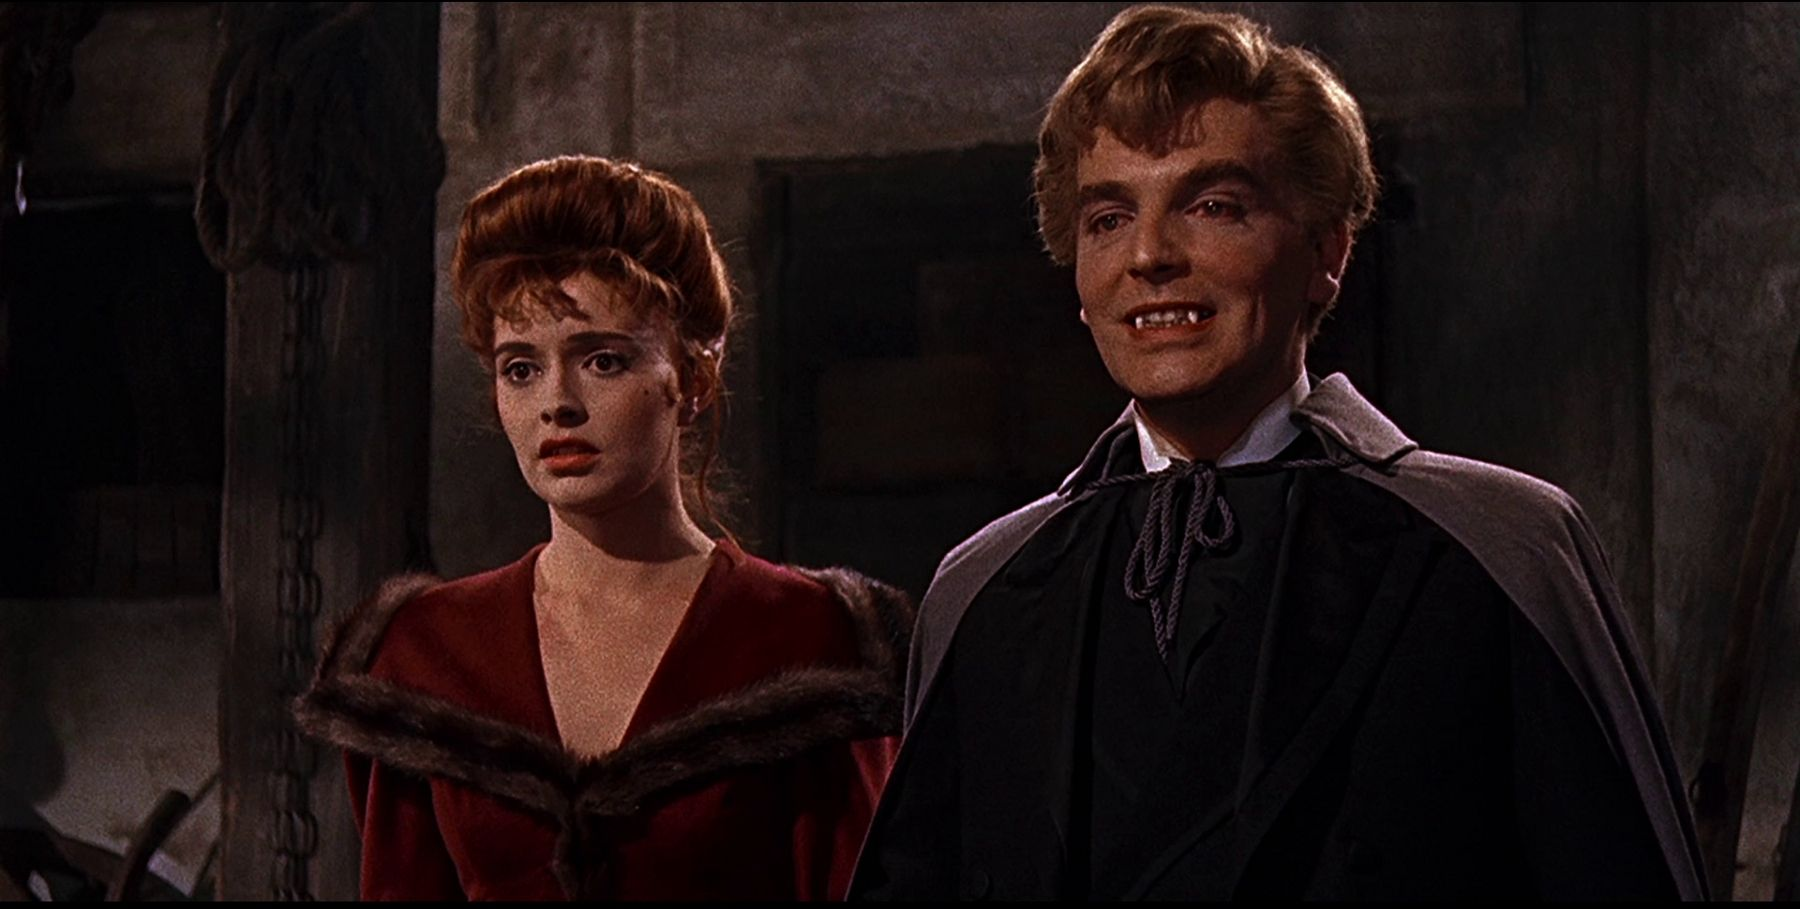 Schoolteacher Yvonne Monlaur with David Peel as Baron Meinster in The Brides of Dracula (1960)